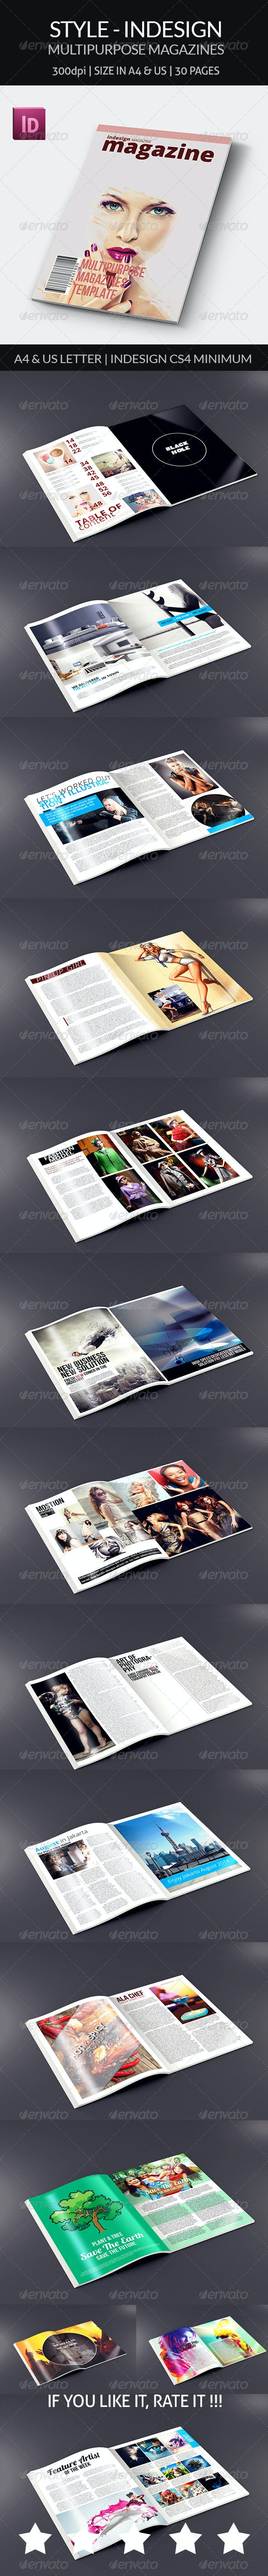 Style - Indesign Magazine Template - Magazines Print Templates